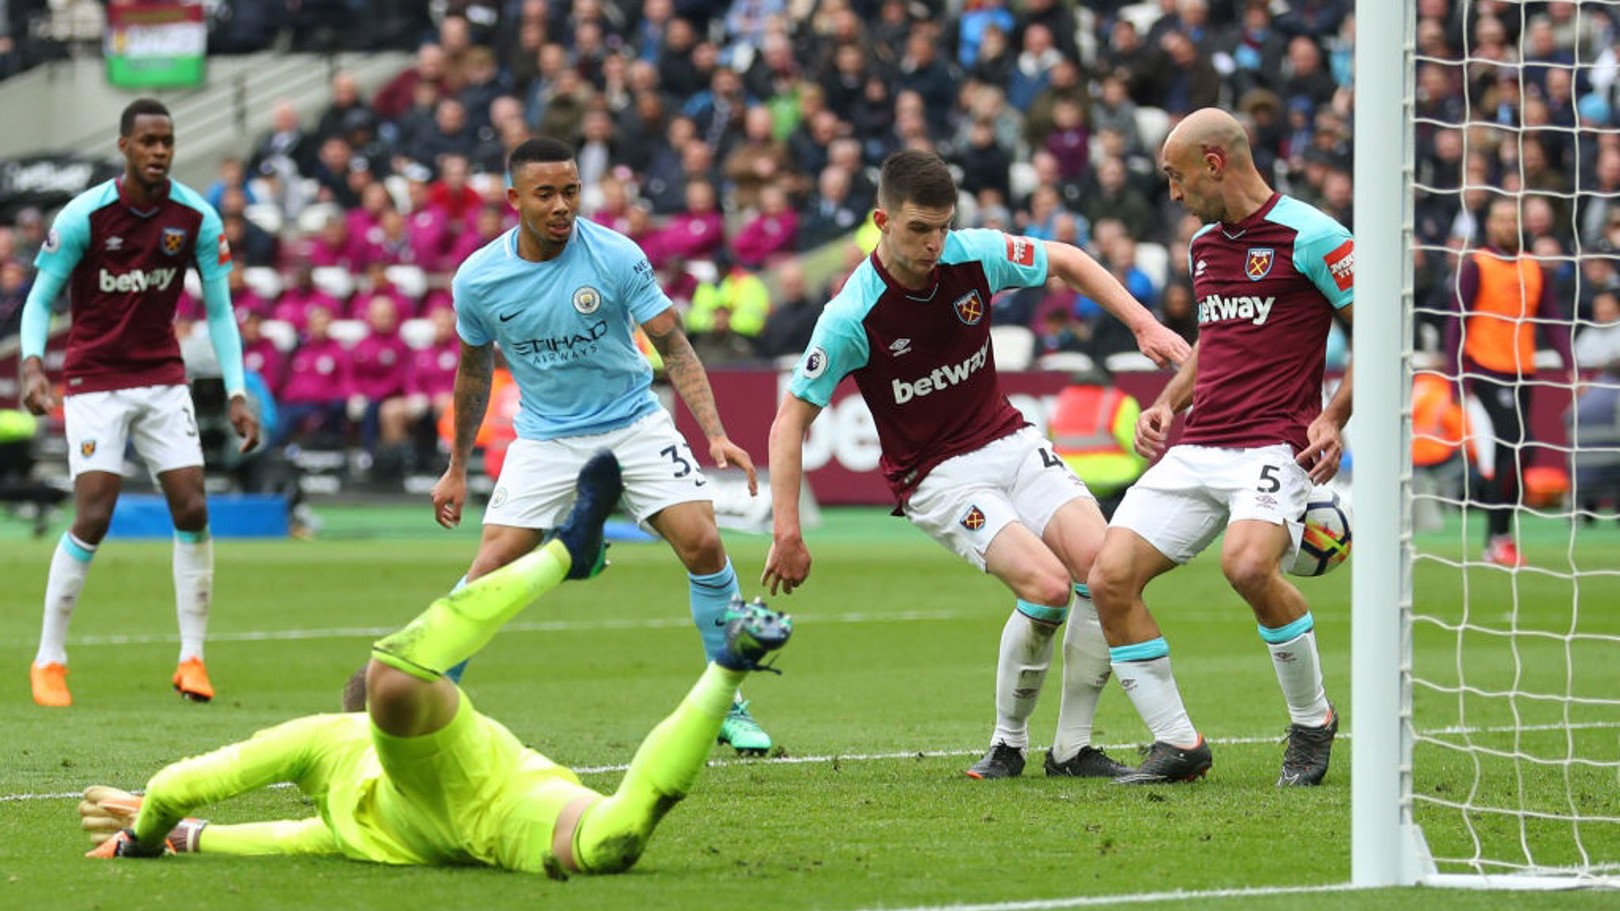 OG: Declan Rice puts through his own goal to double City's lead - the Blues' 100th goal of the Premier League season.